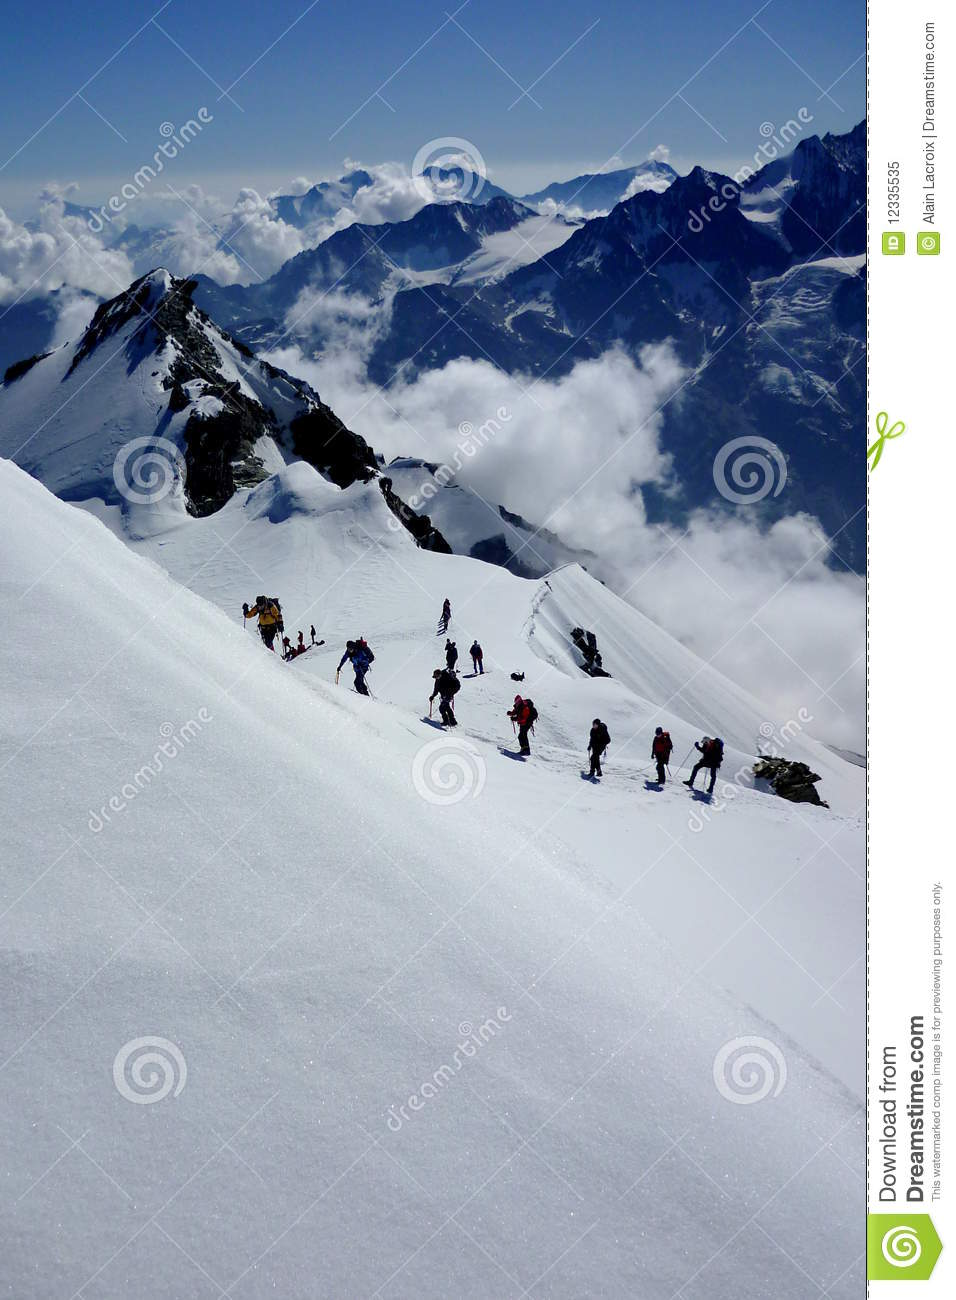 Going Up The Mountain Royalty Free Stock Photo Image